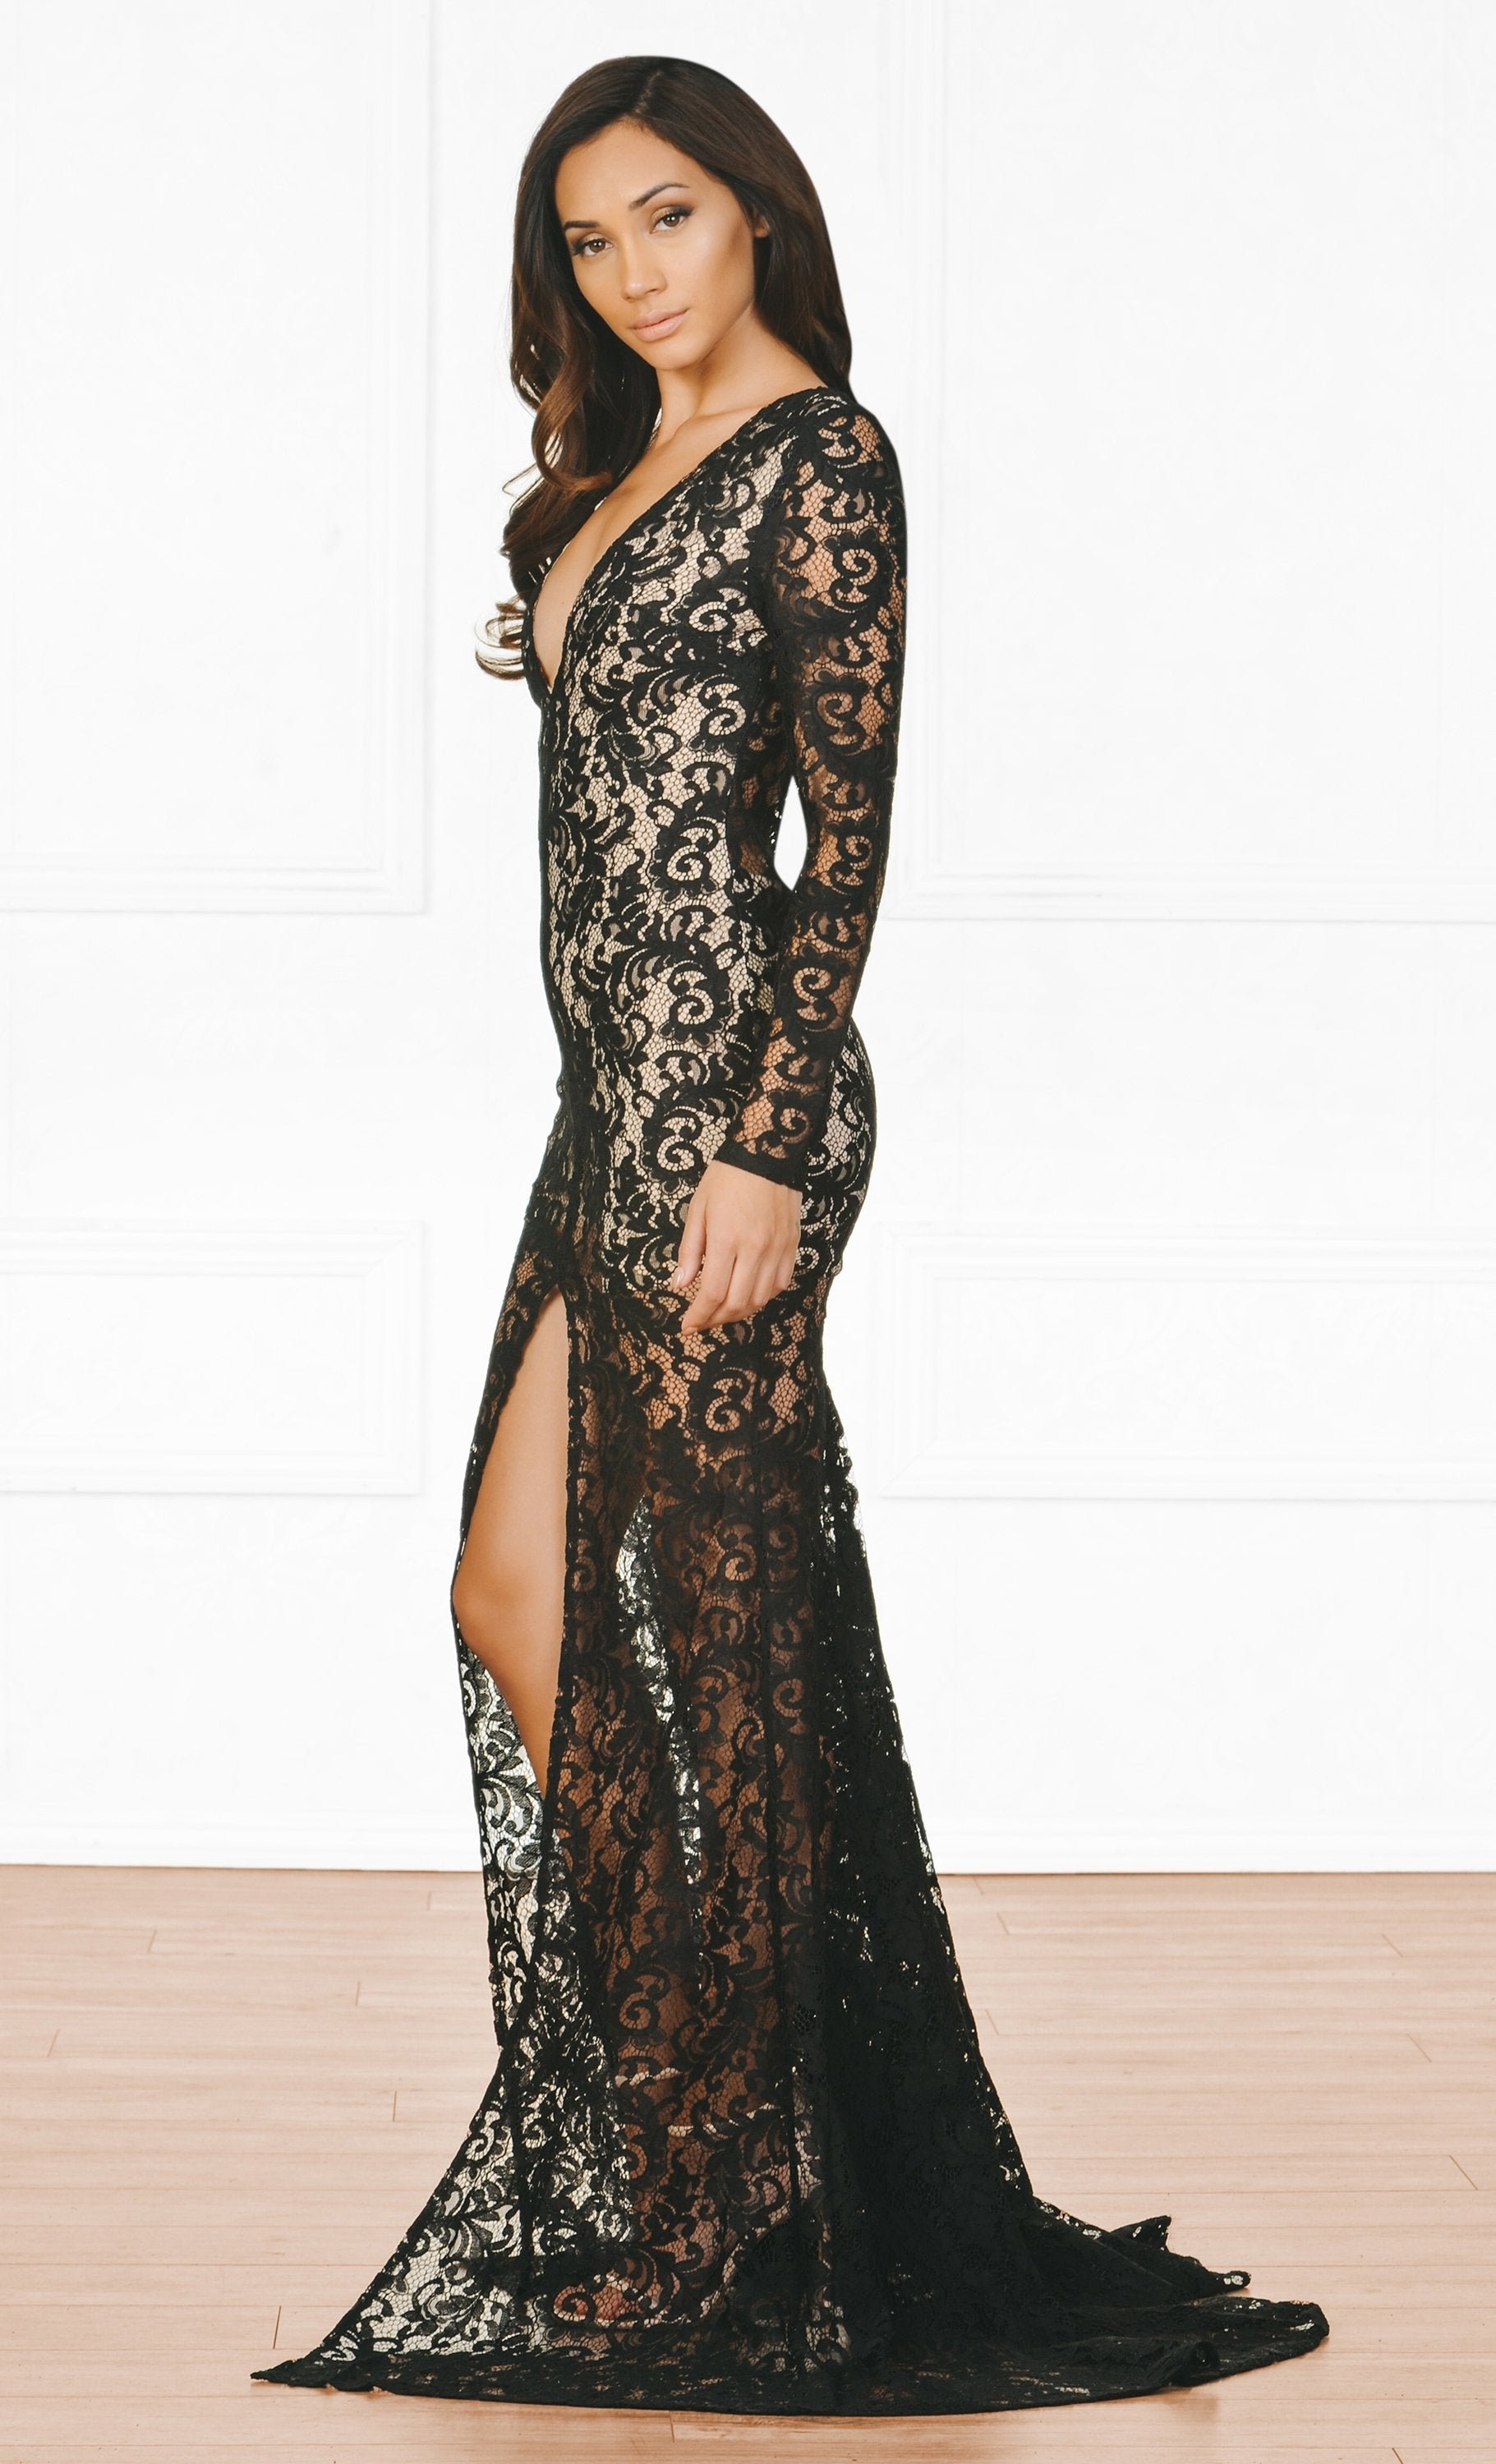 Indie XO Modern Romance Black Nude Lace Long Sleeve Plunge V Neck High Front Slit Maxi Dress